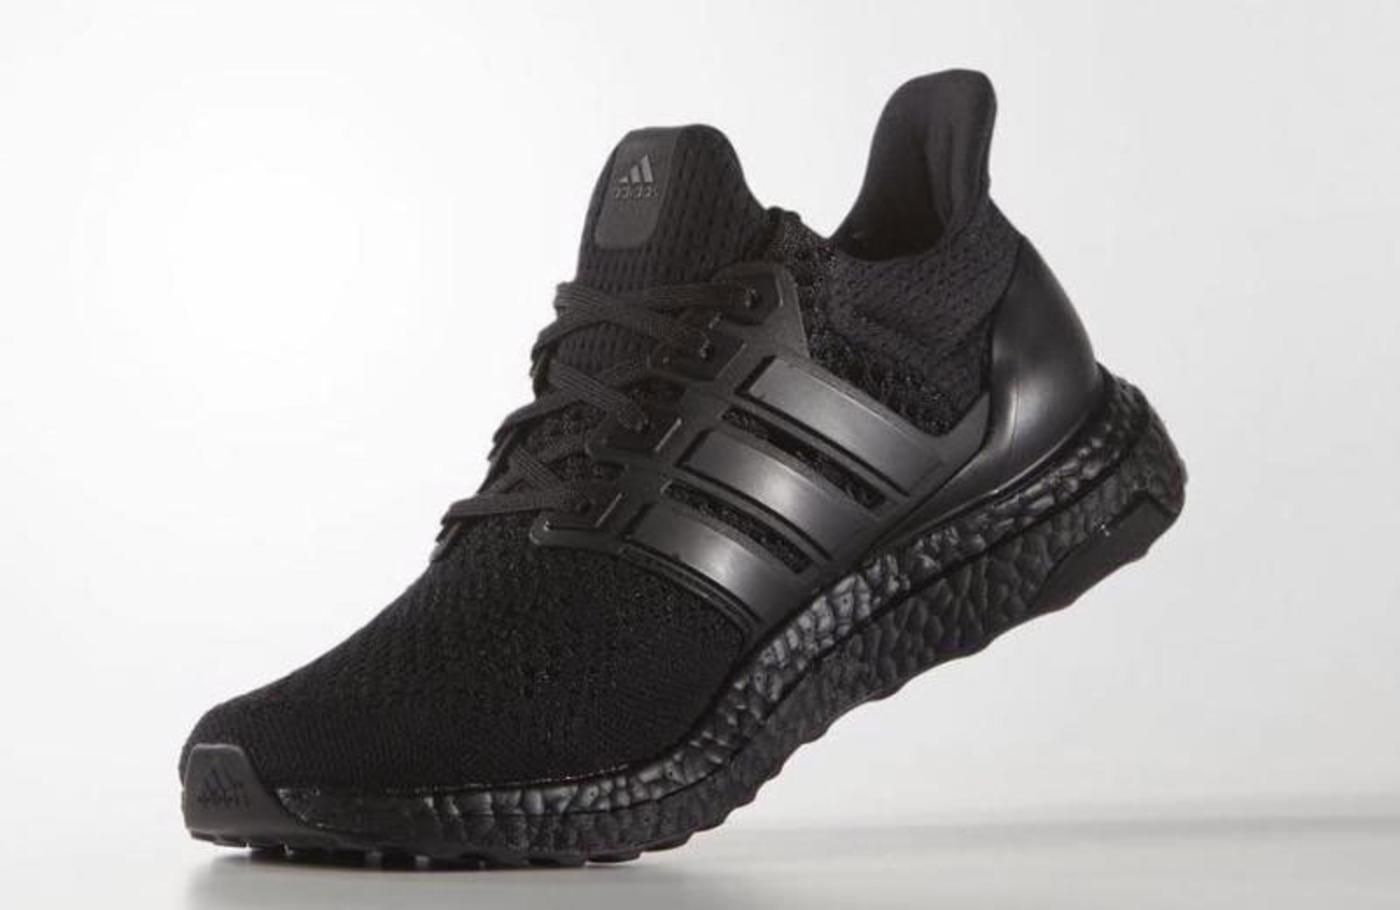 An Official Look At The Adidas Ultra Boost Triple Black Adidas Ultra Boost Ultra Boost Triple Black All Black Adidas